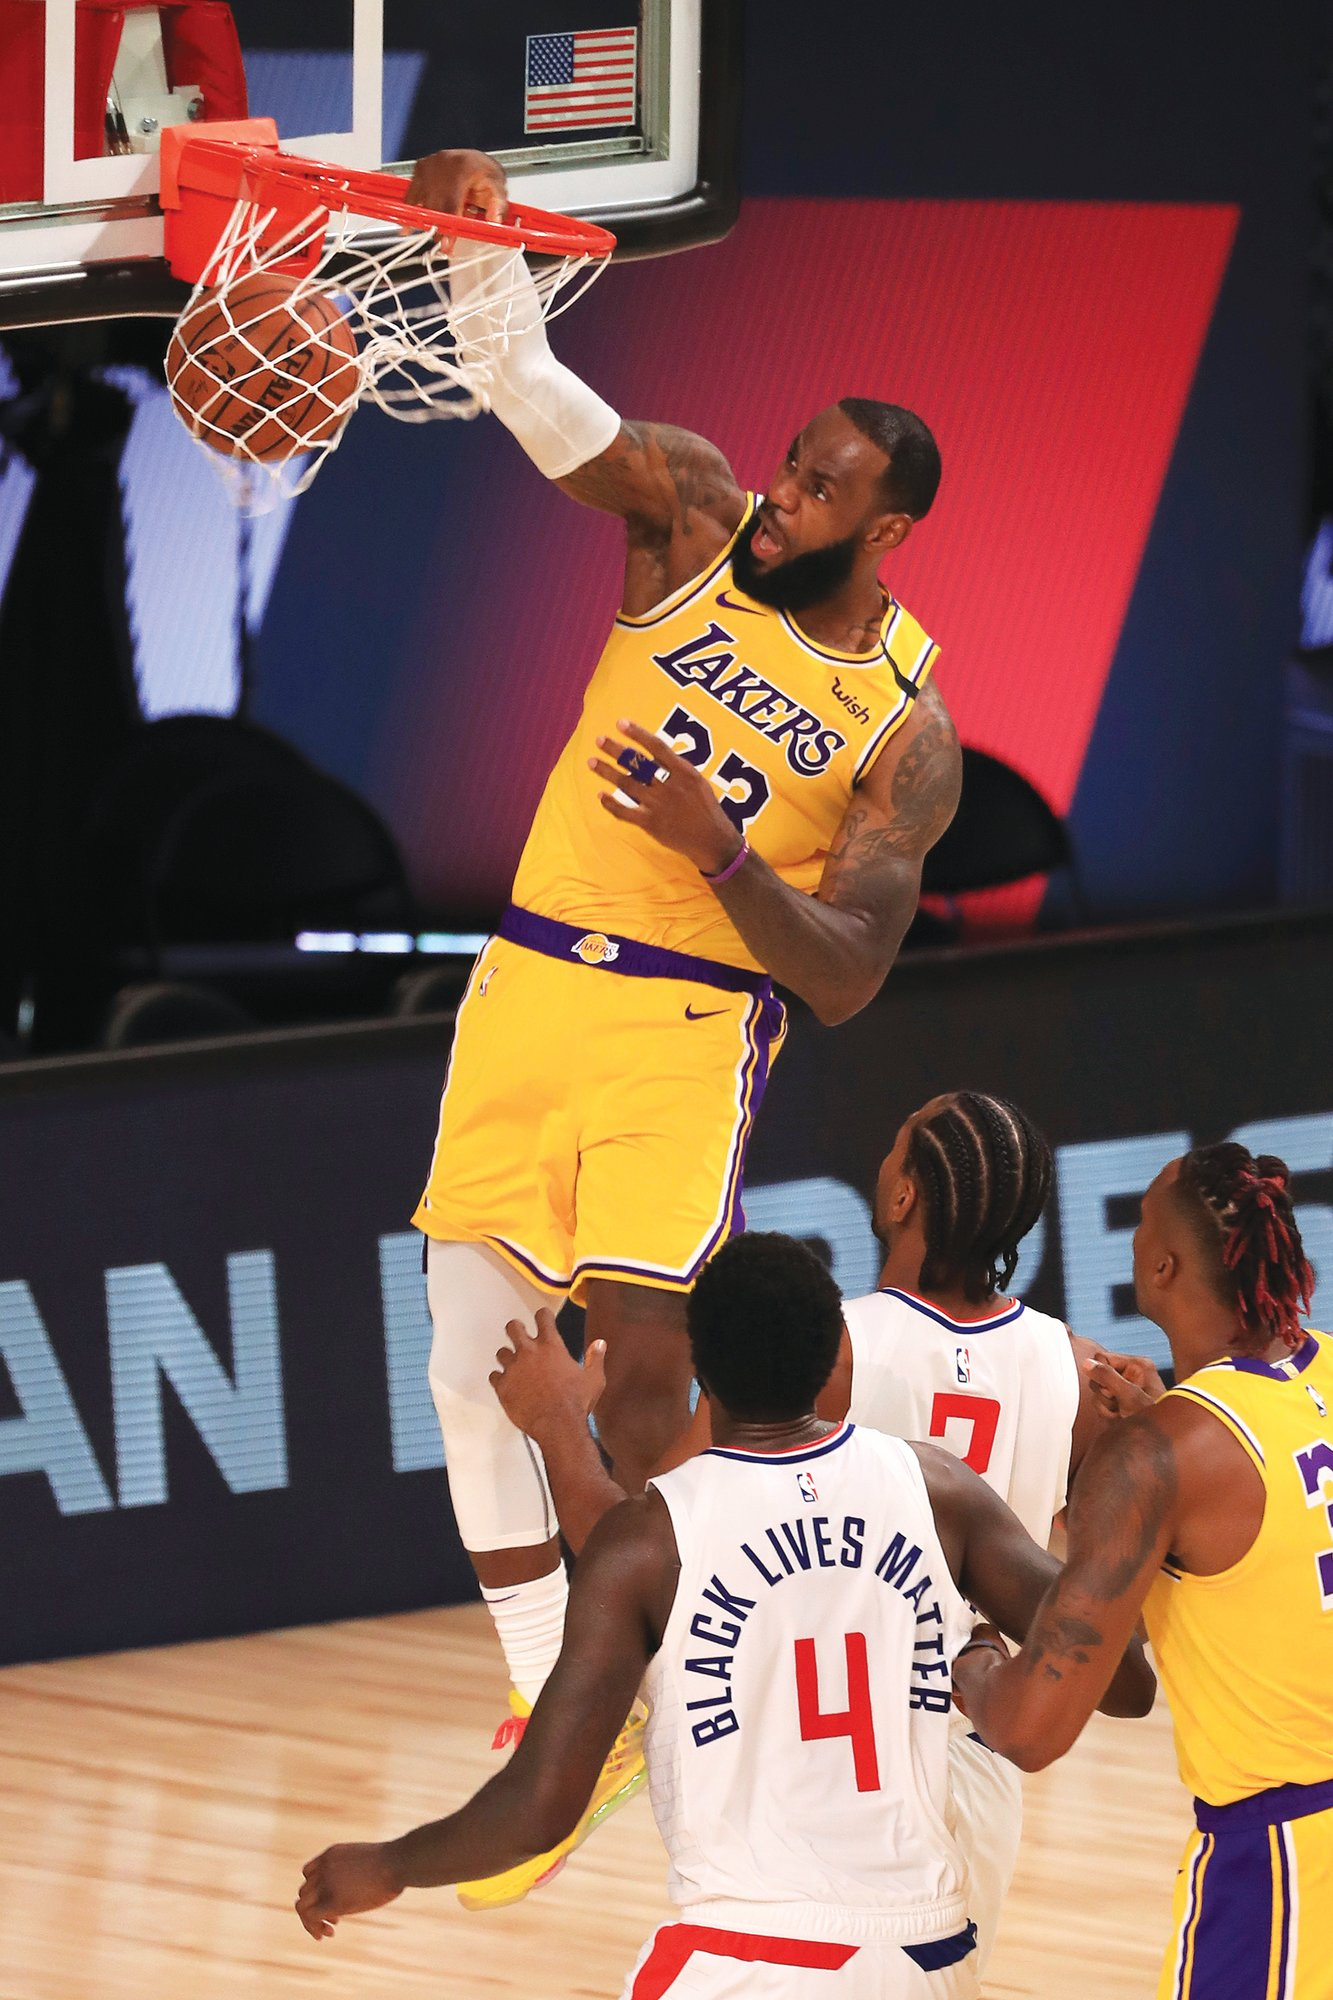 Los Angeles Laker LeBron James, top, dunks against the Los Angeles Clippers during the Lakers' 103-101 win on Thursday in Lake Buena Vista, Florida.